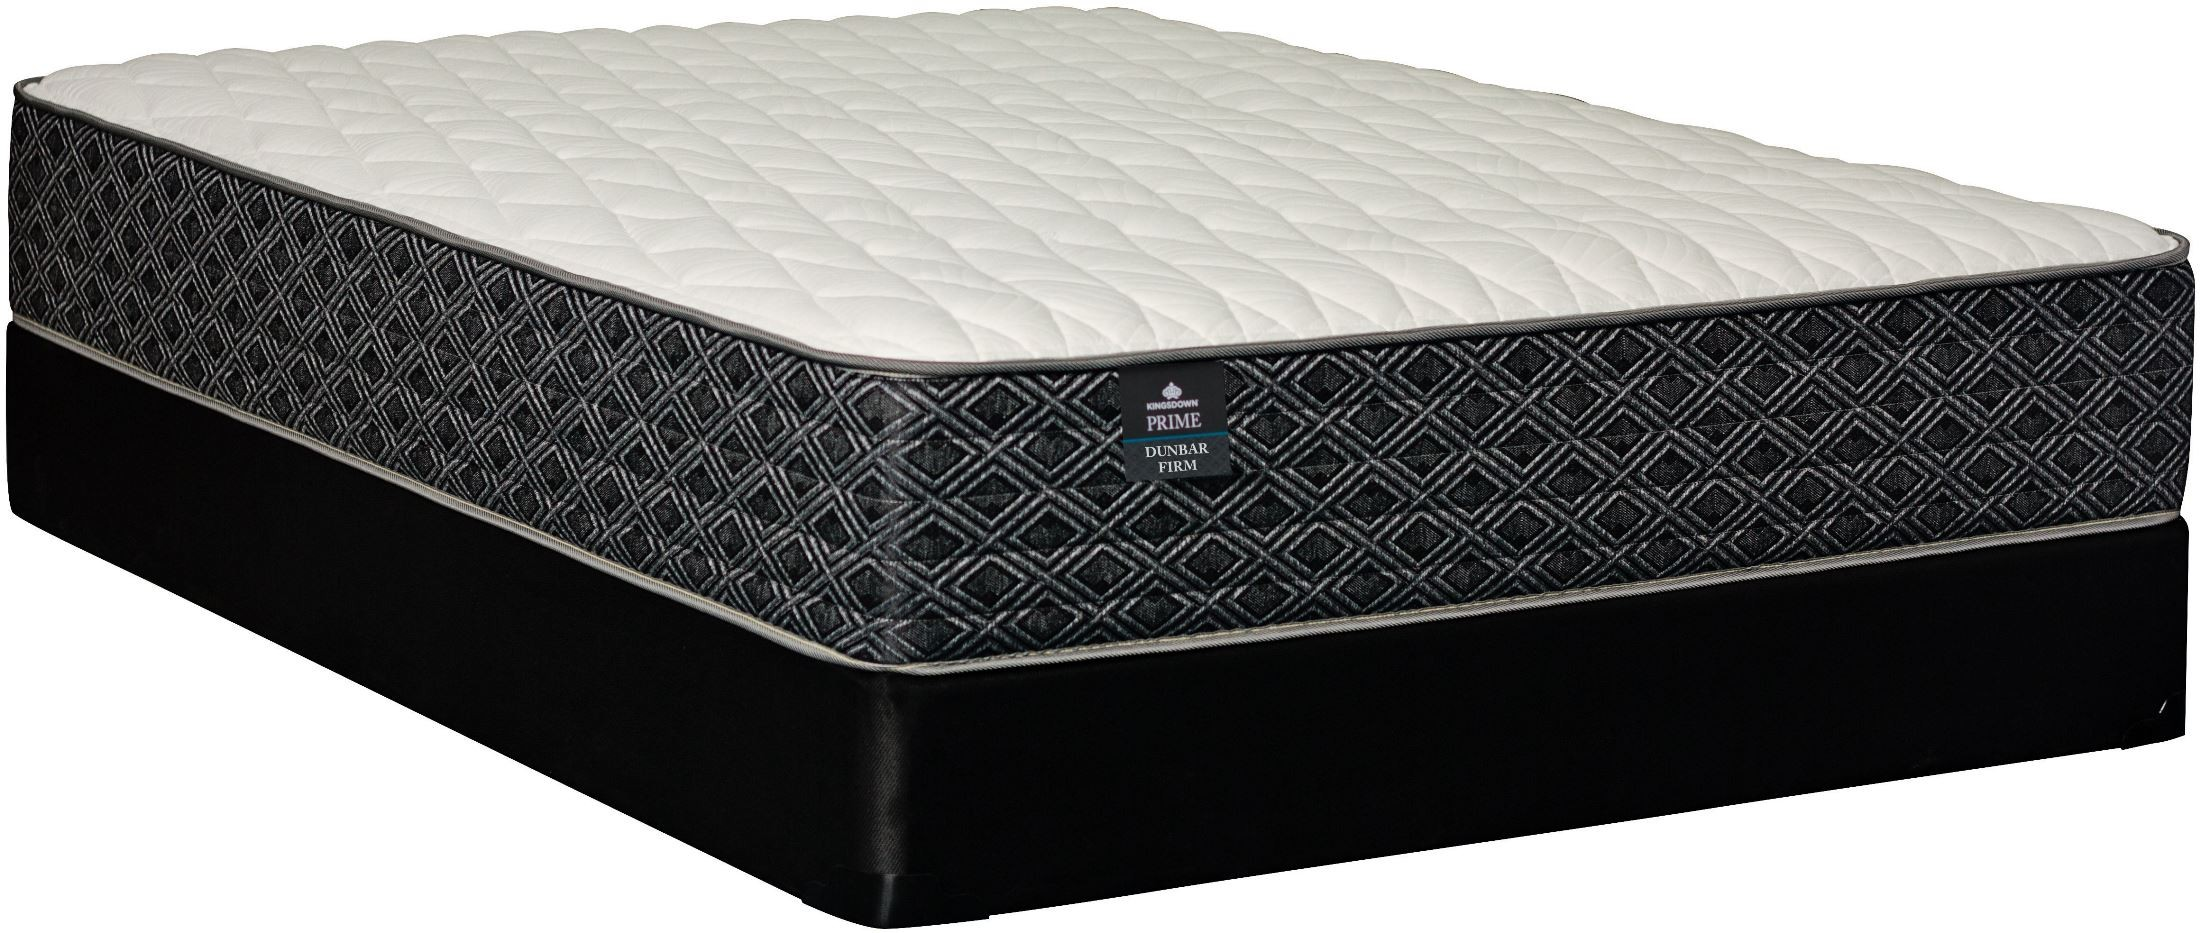 prime dunbar firm full size mattress from kingsdown coleman furniture. Black Bedroom Furniture Sets. Home Design Ideas